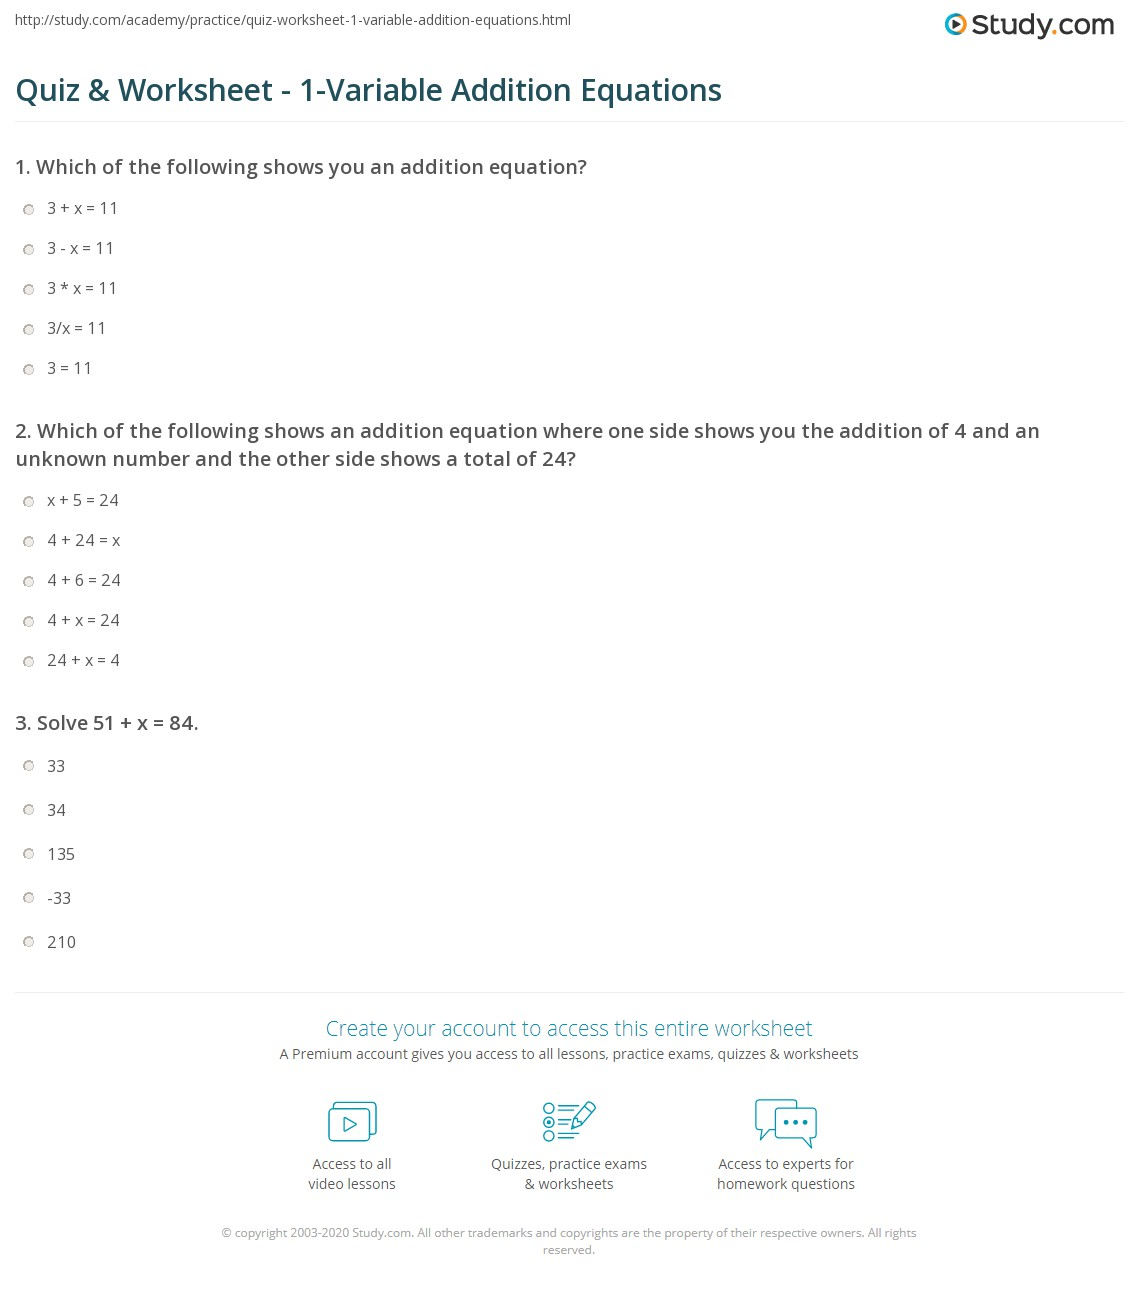 Quiz Worksheet 1 Variable Addition Equations Study Com